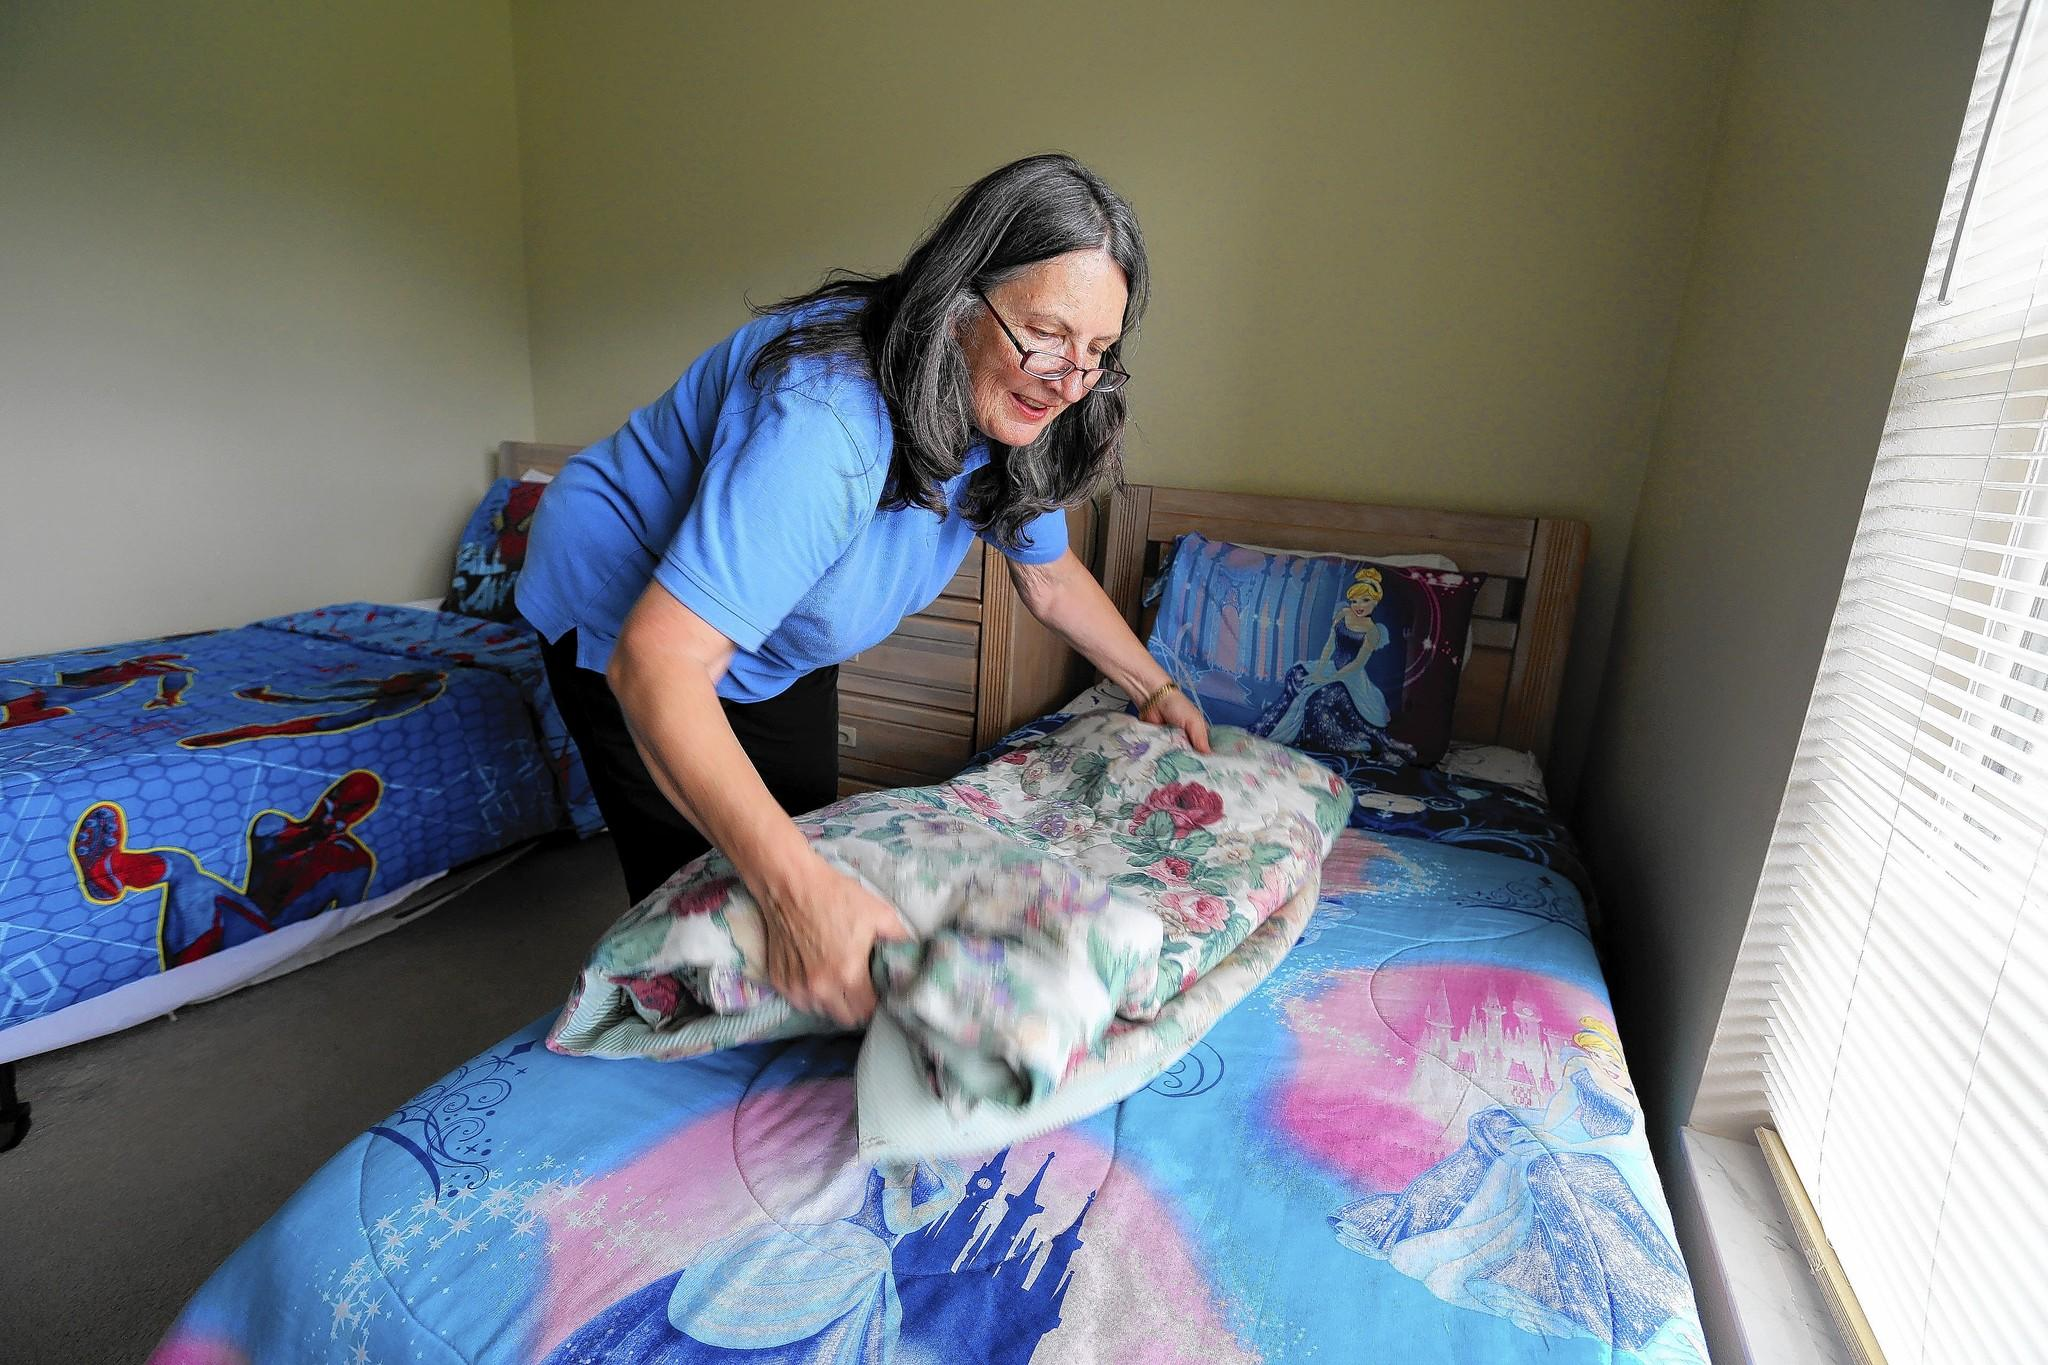 FloridaDreamHomes.com co-owner Karin Boyer folds linens in a bedroom in one of the rental properties they manage, so the Kissimmee house is ready for renters who will arrive later in the day.